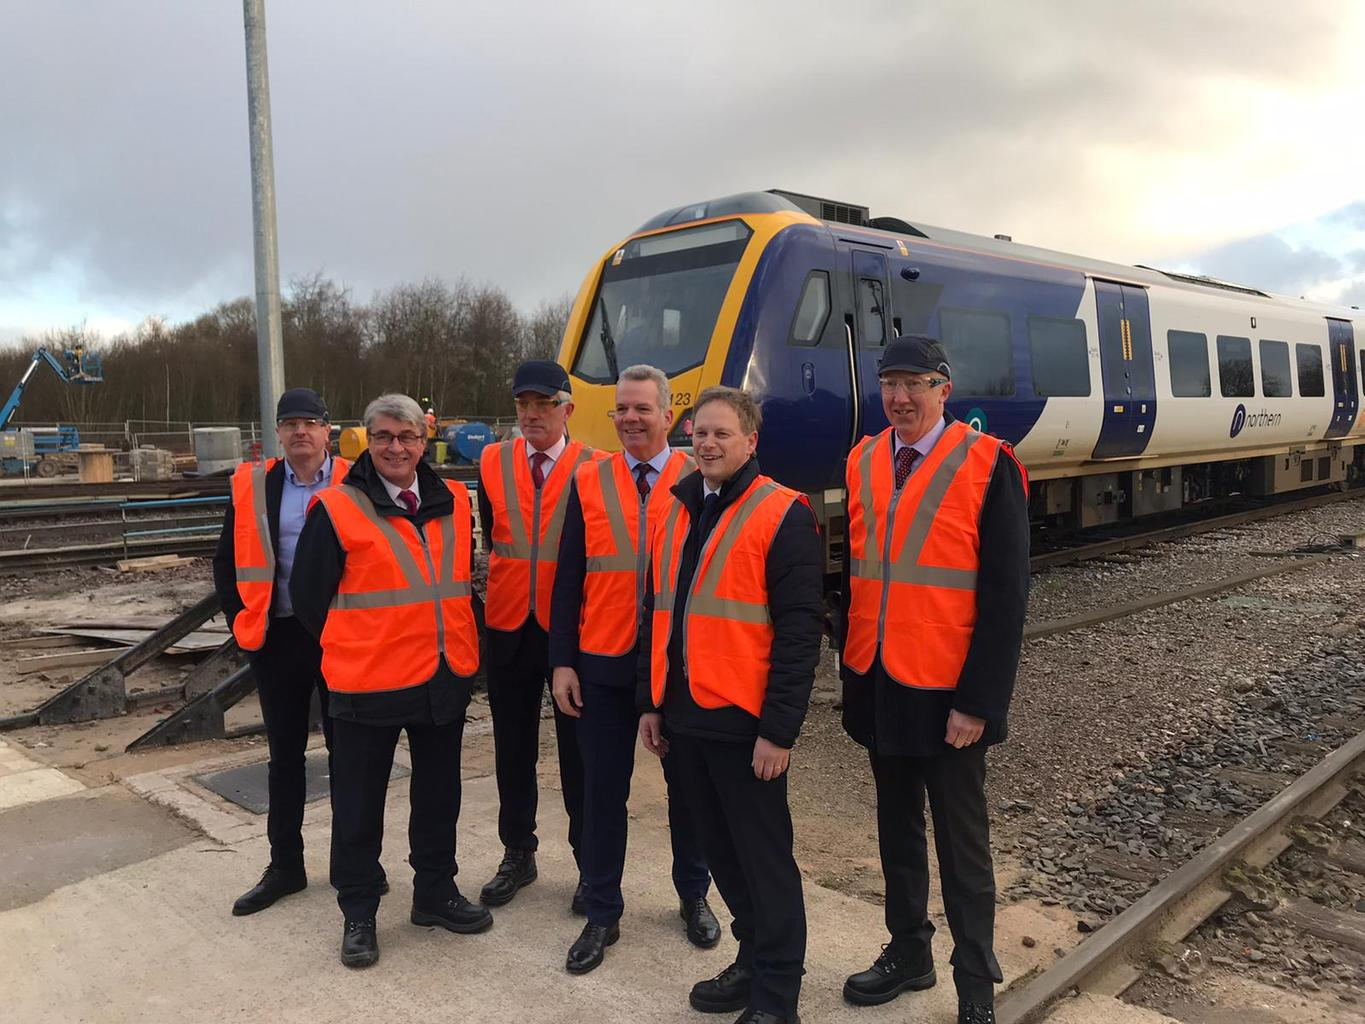 Plan for Northern rail 'in 100 days' as Government takes control